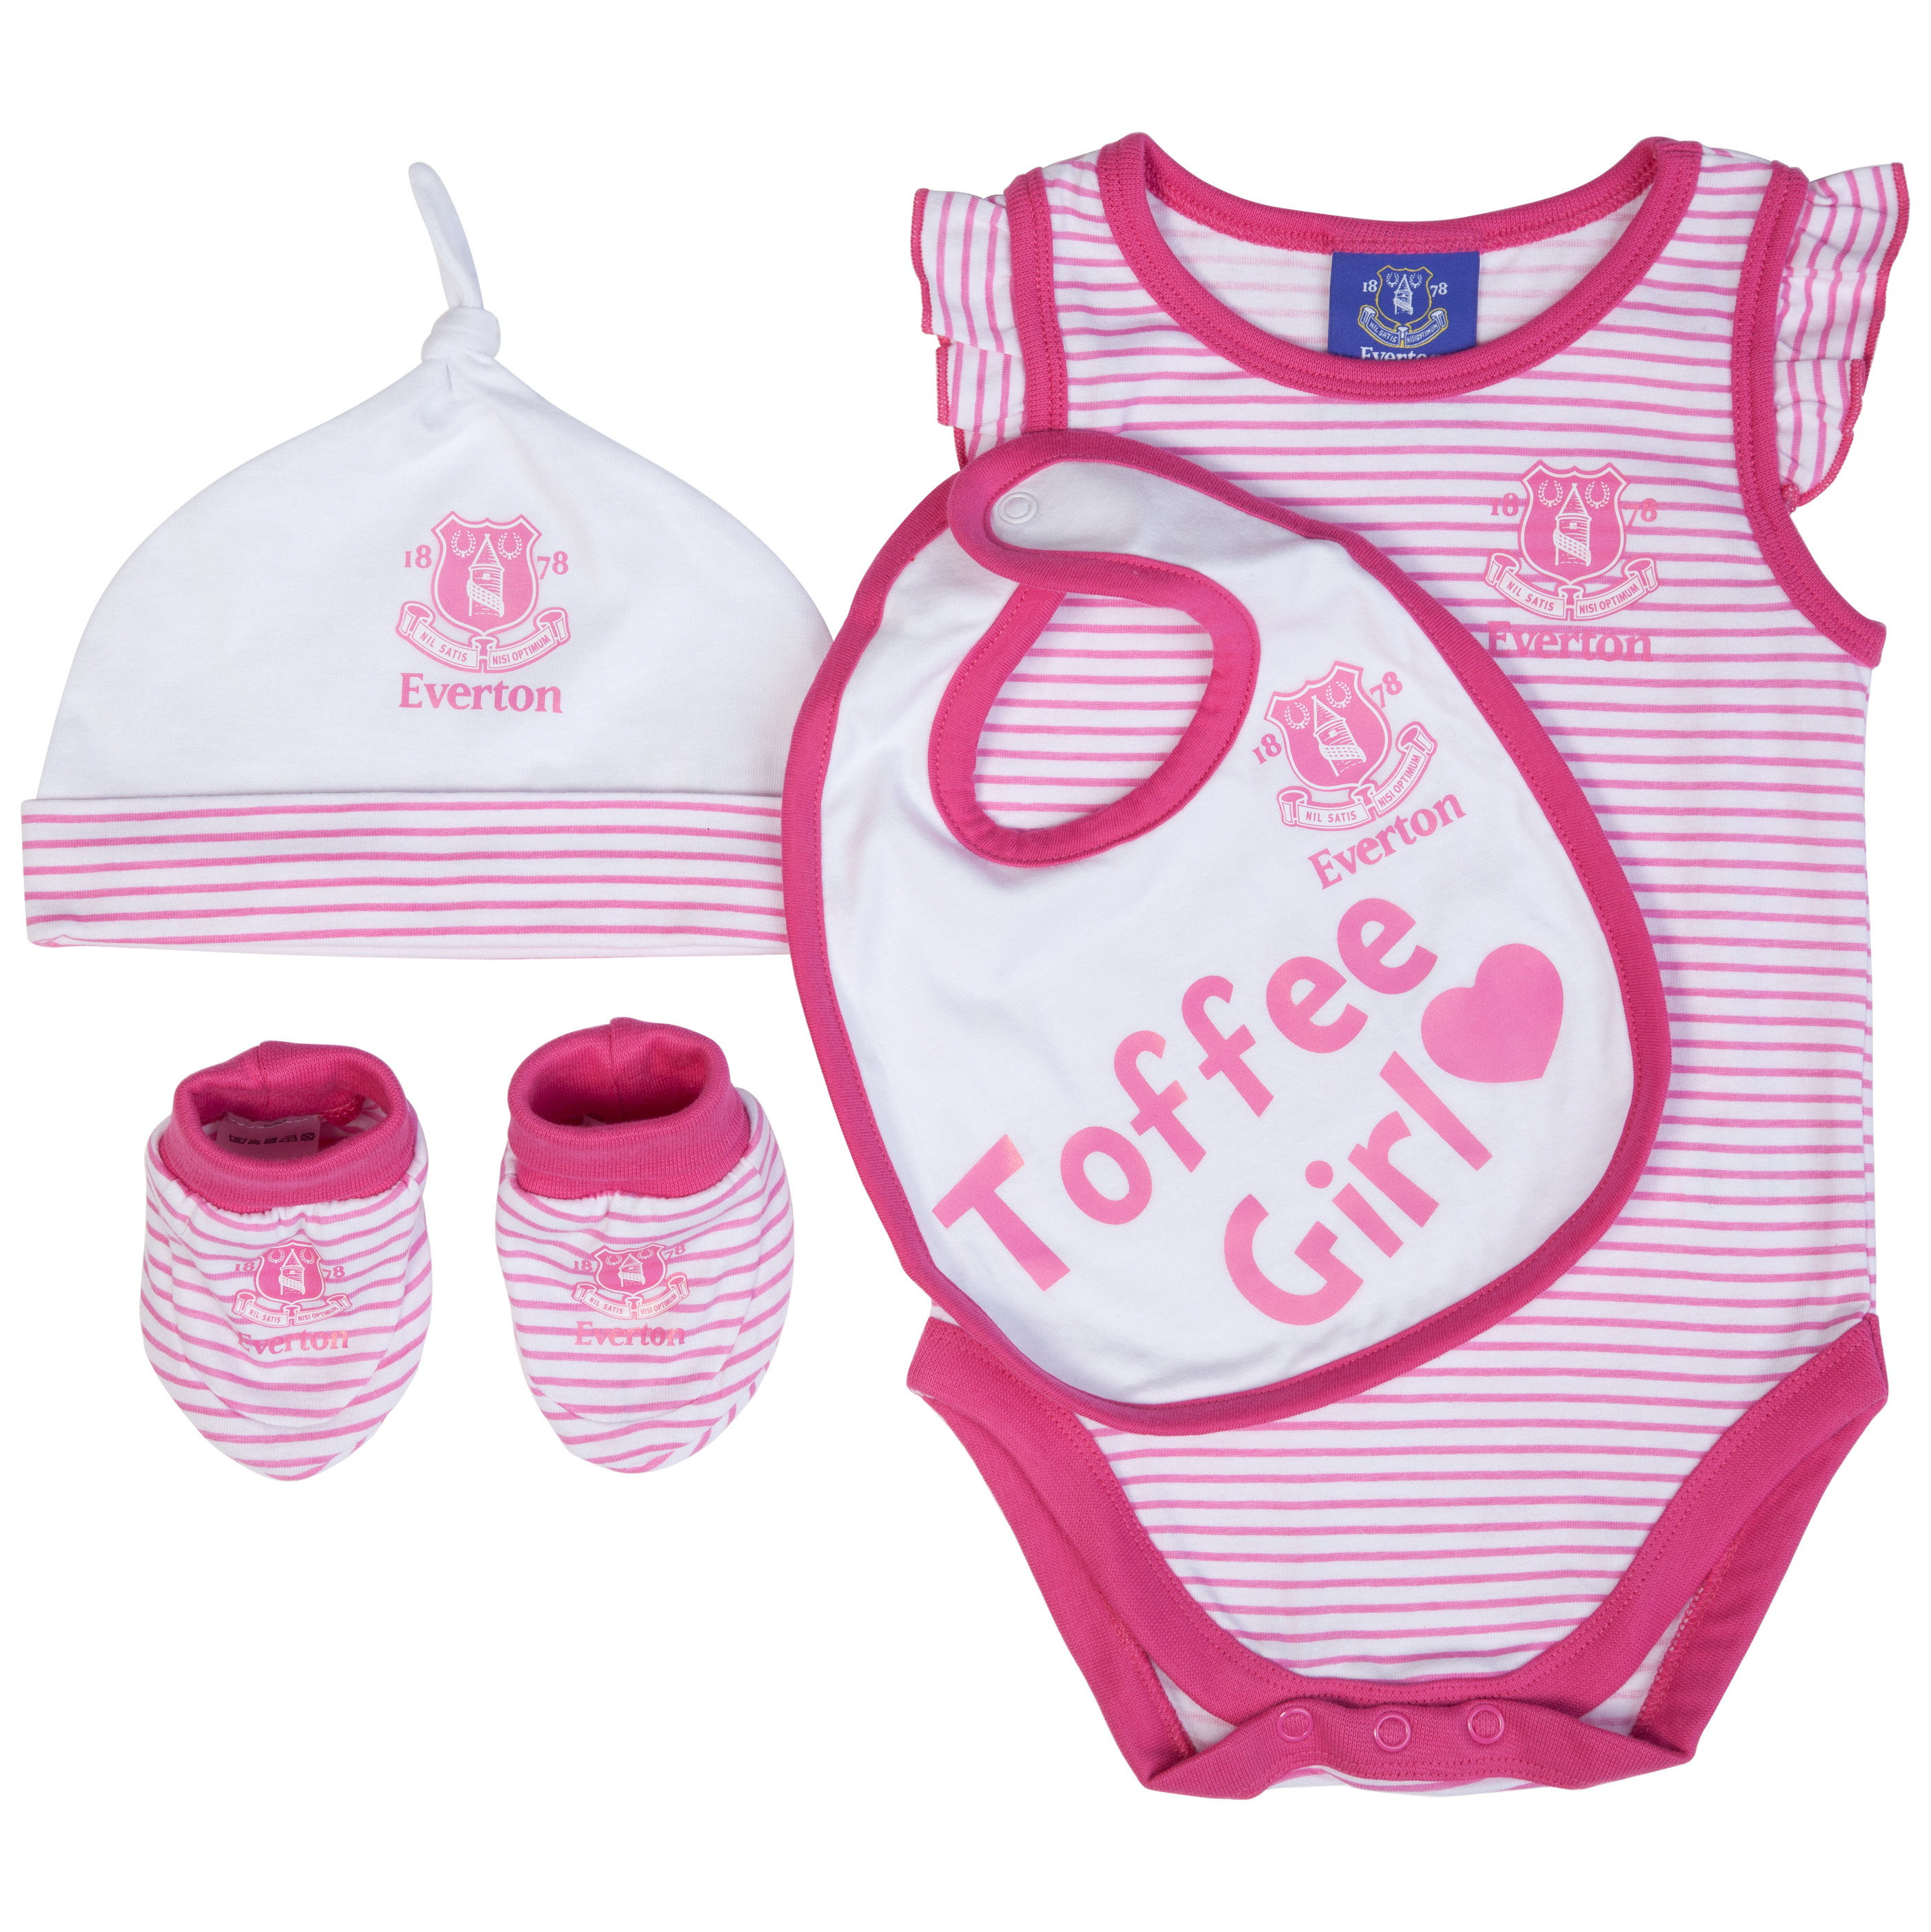 Everton 4 piece Gift Set - Pink/White - Baby